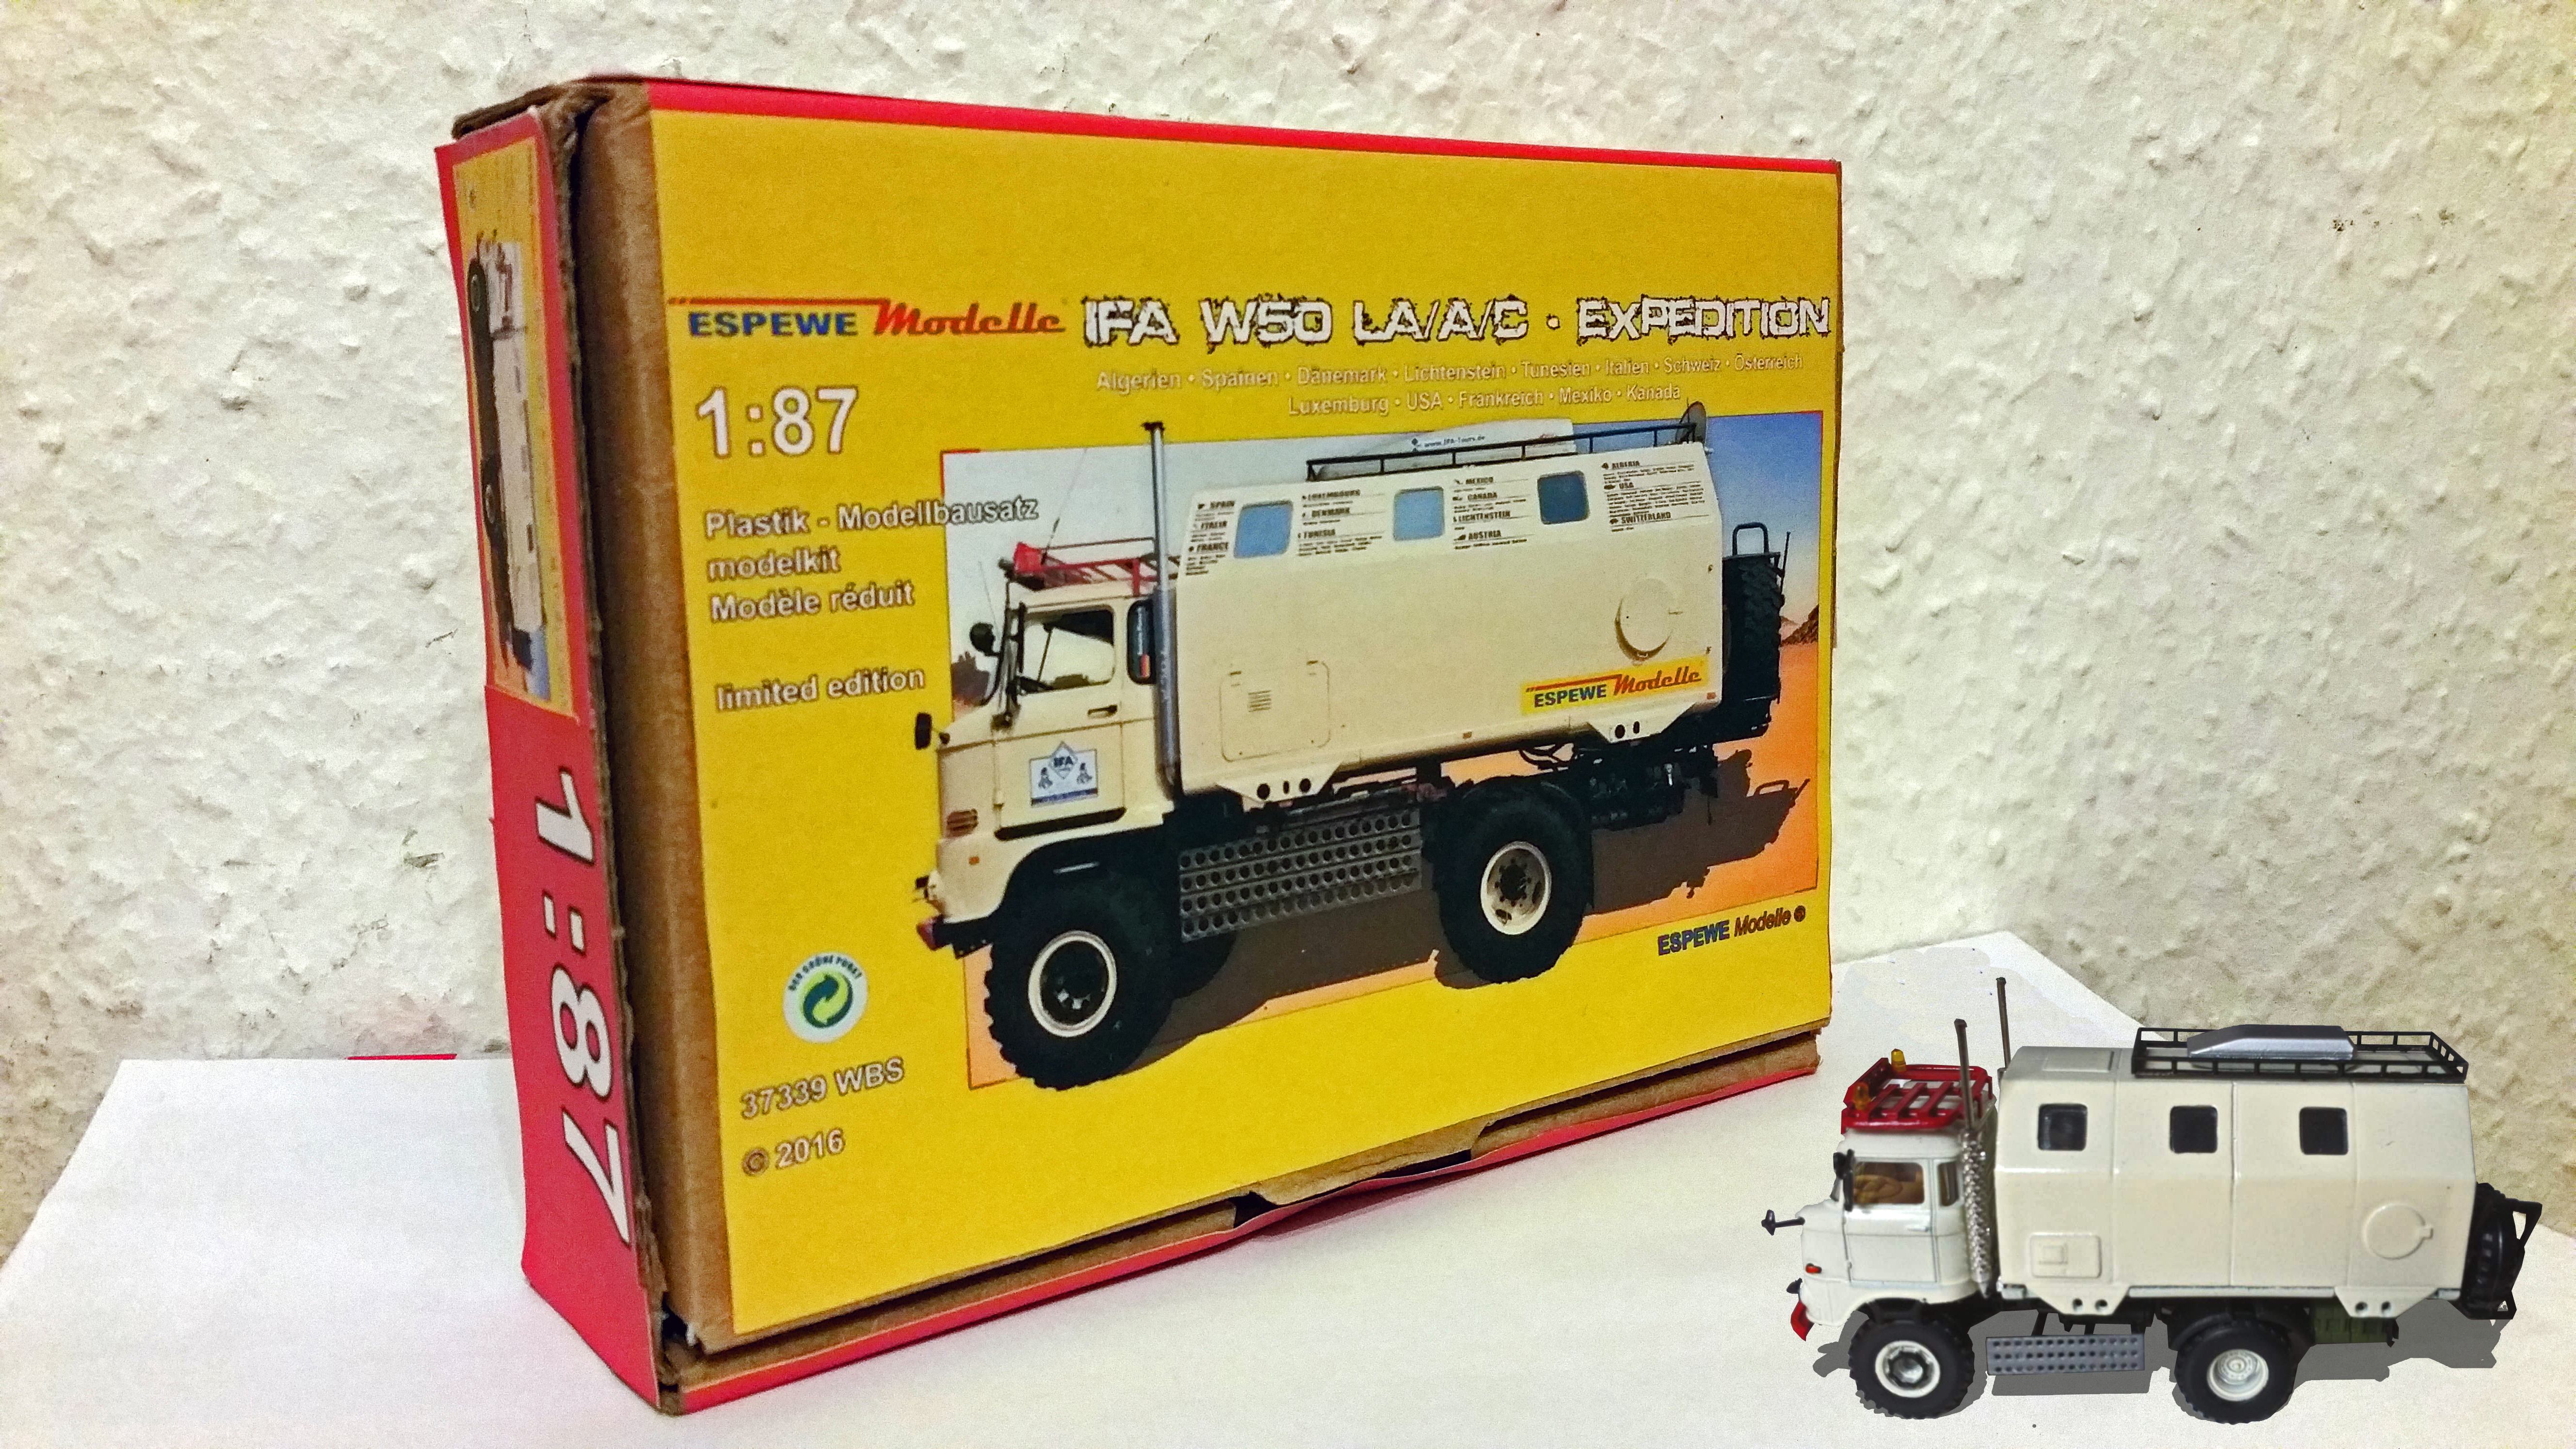 IFA W50 LA/A/C Modell in 1:87 mit Verpackung ESPEWE